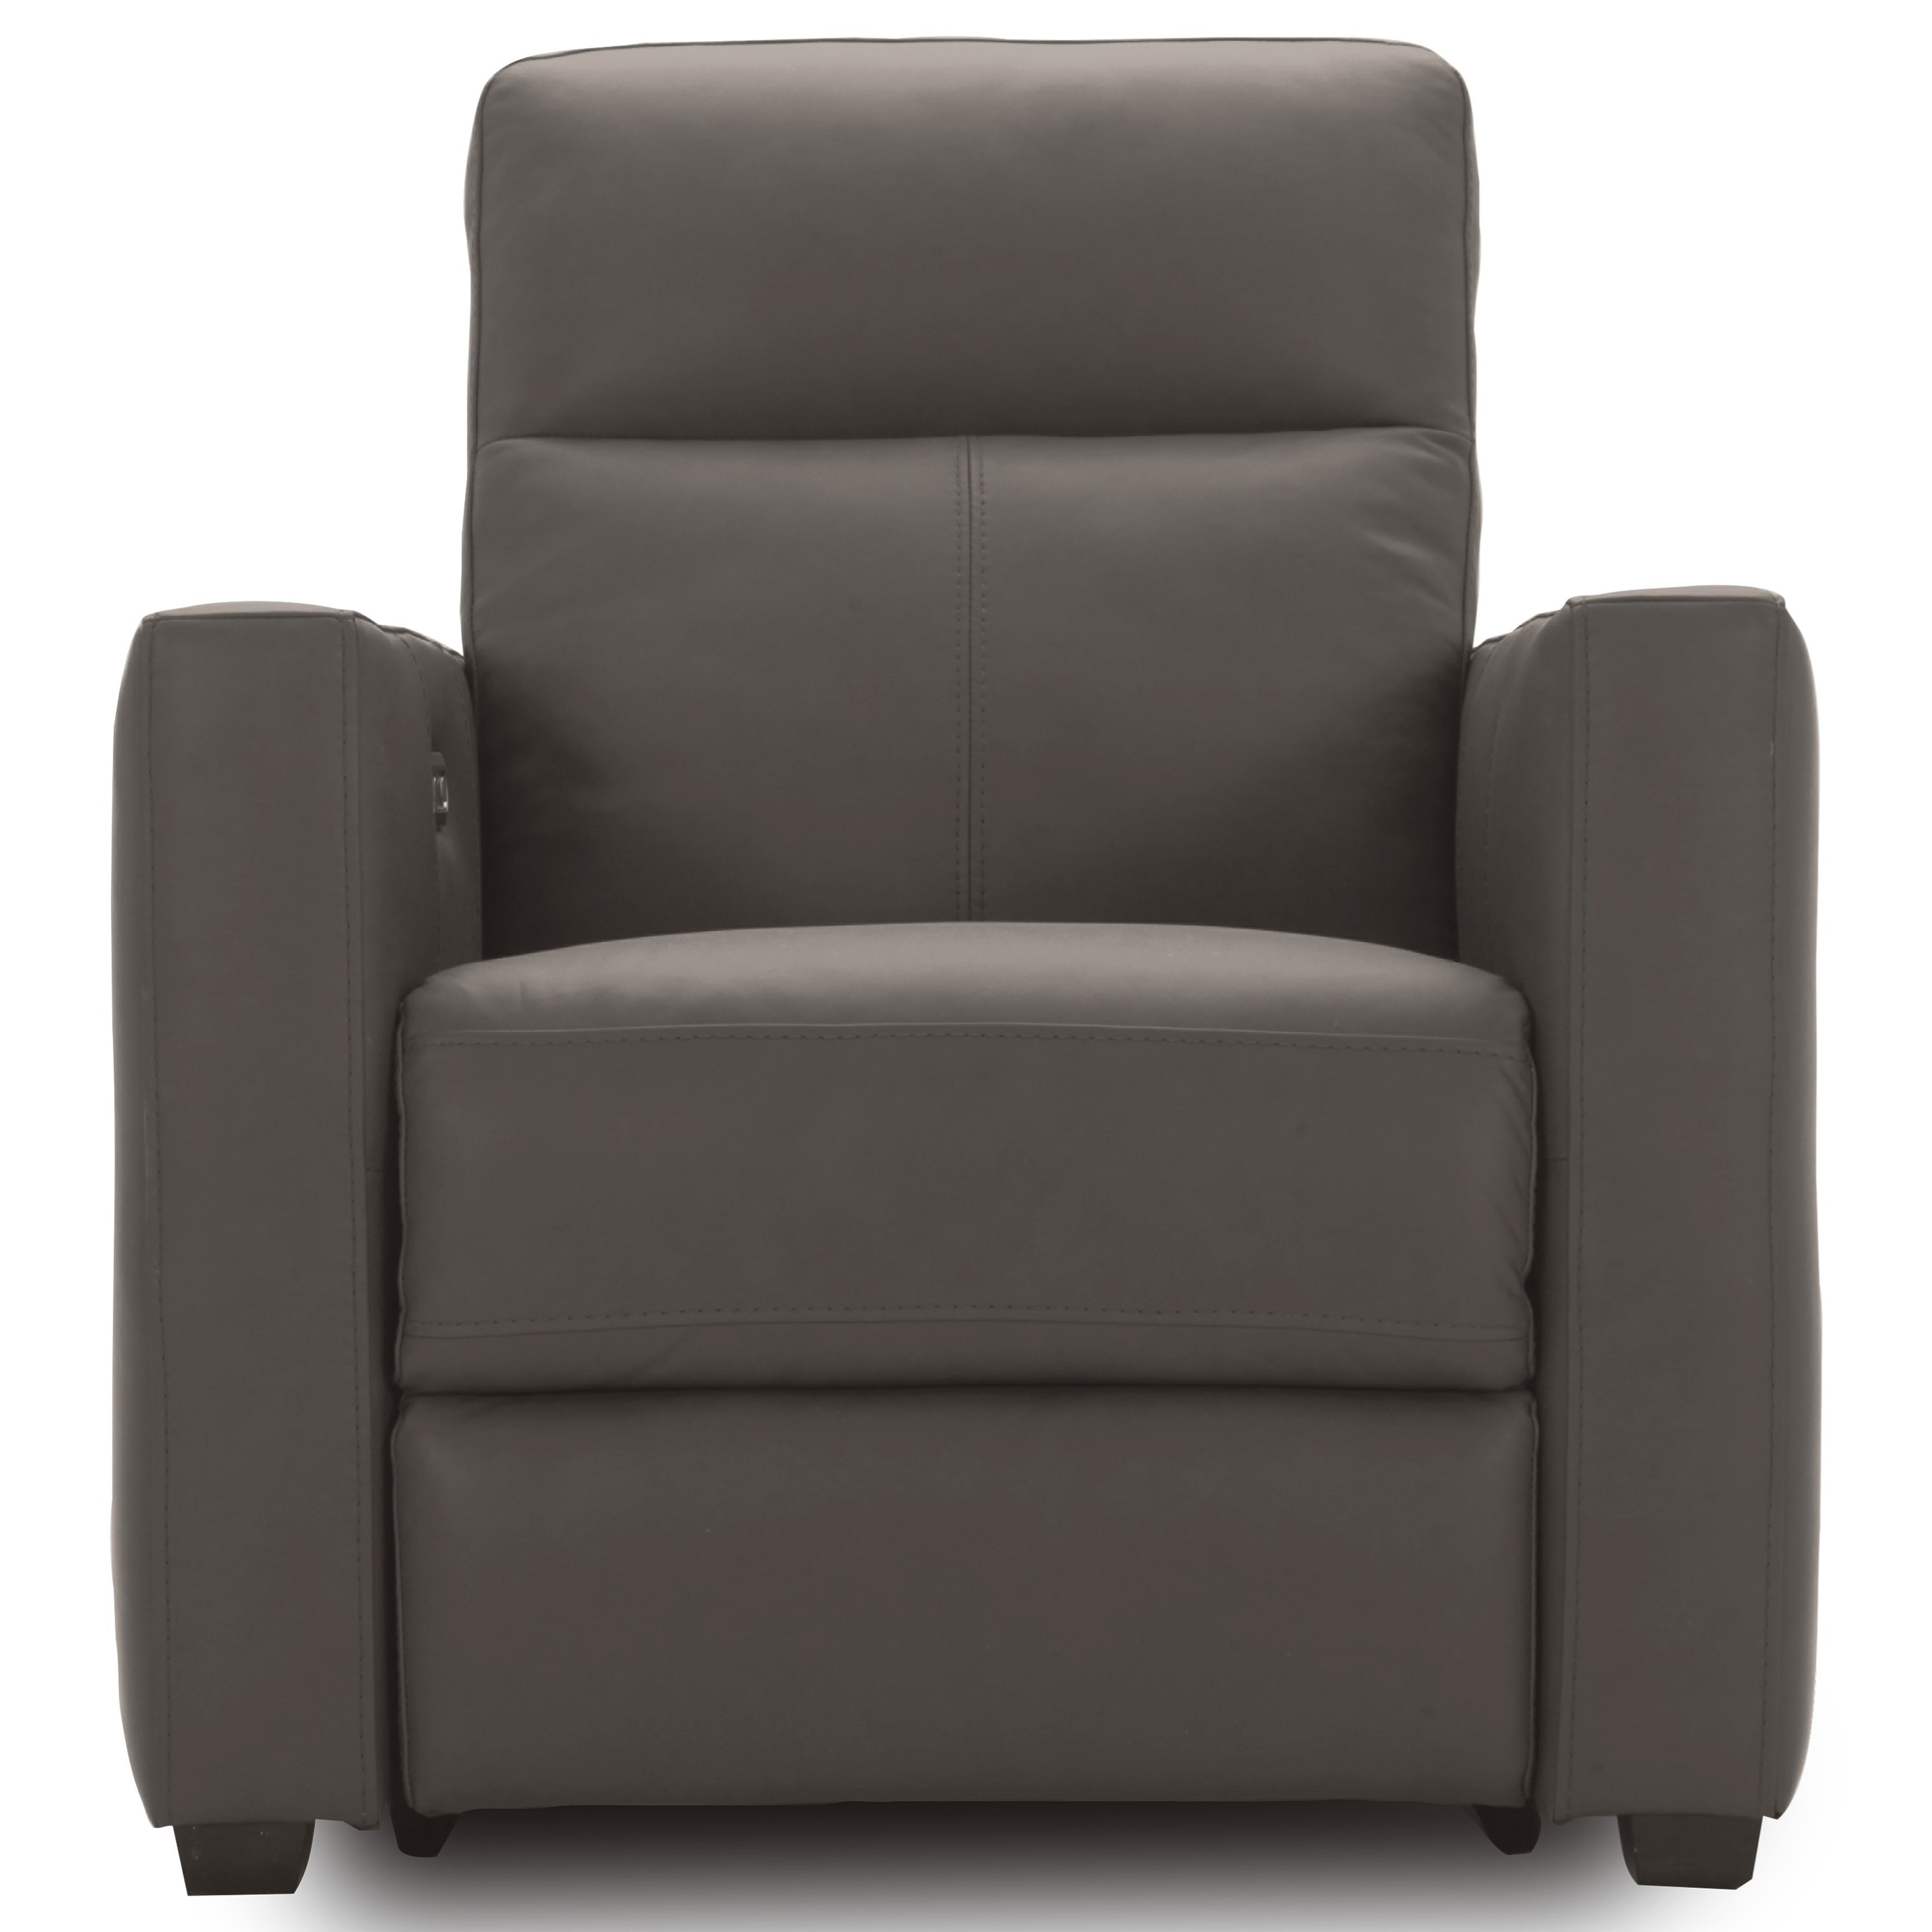 Latitudes - Broadway Power Recliner by Flexsteel at Story & Lee Furniture